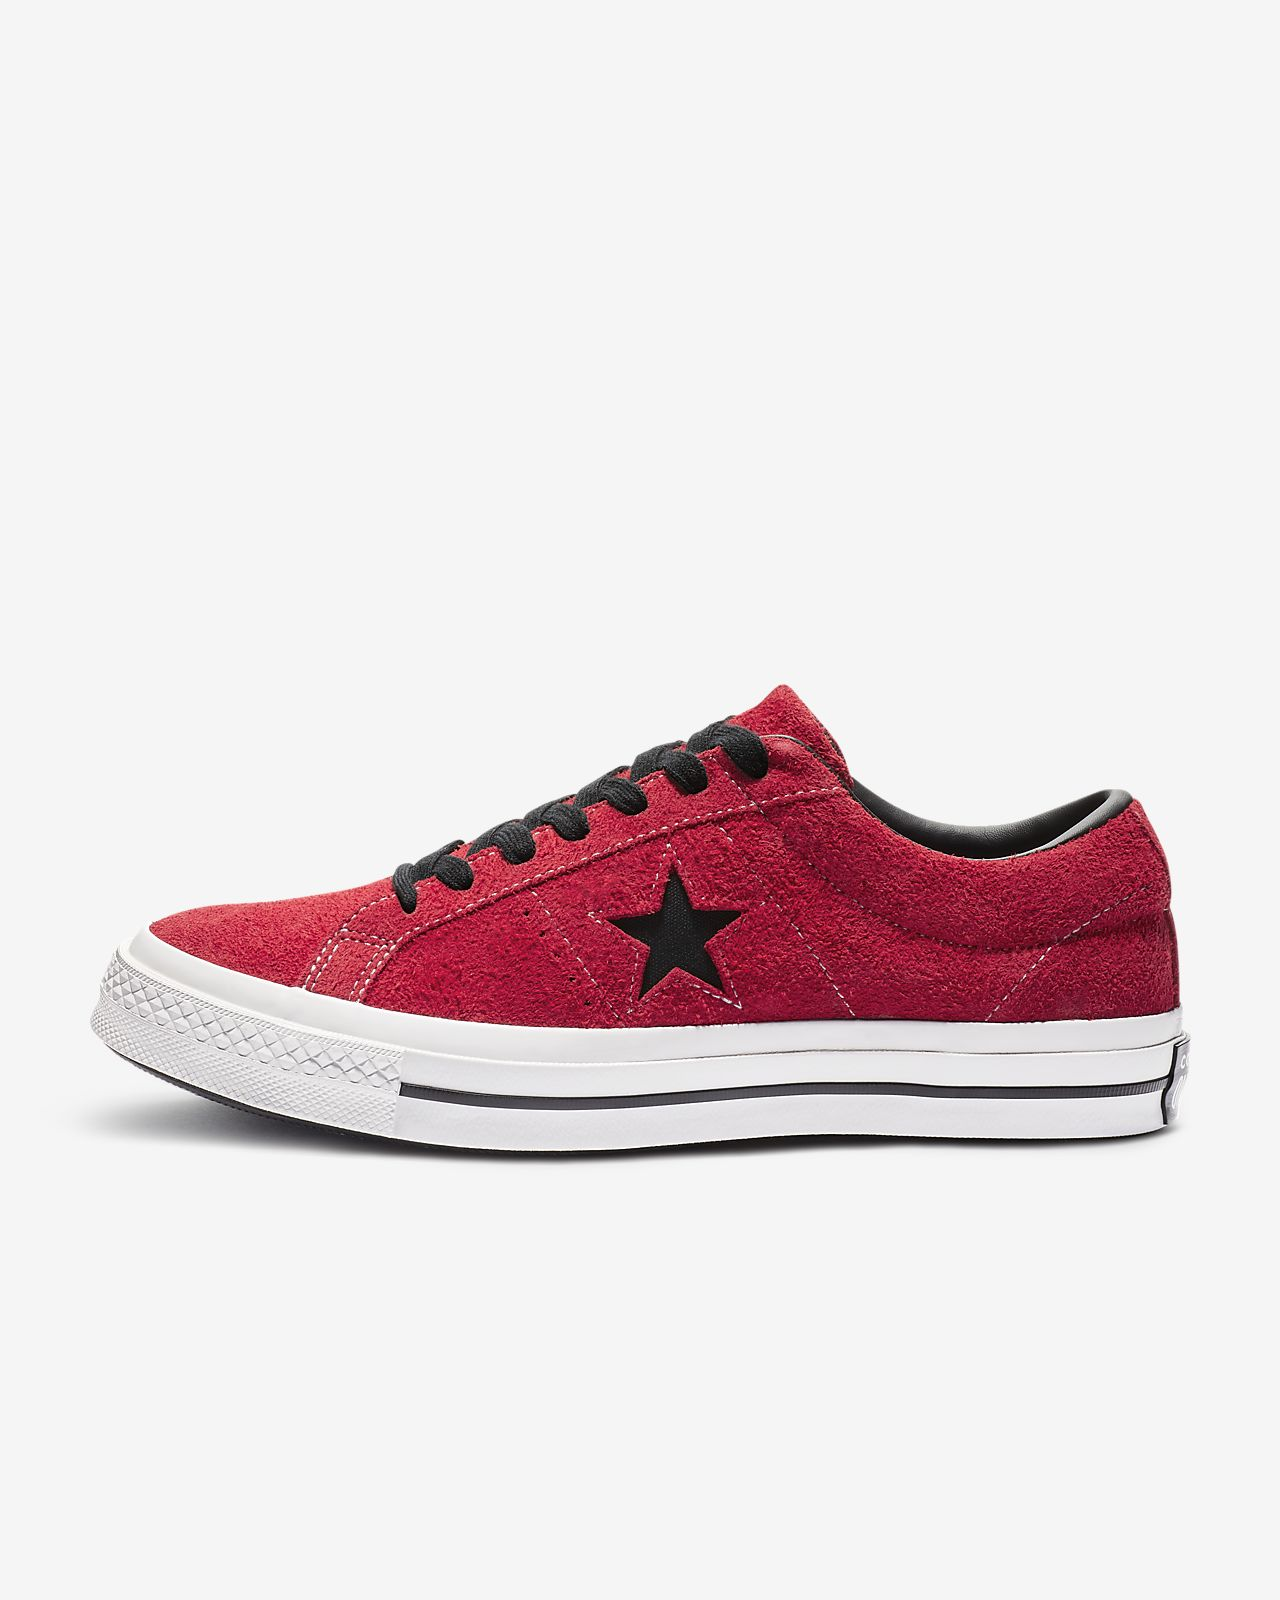 One Star Dark Star Vintage Suede Low Top  Unisex Shoe